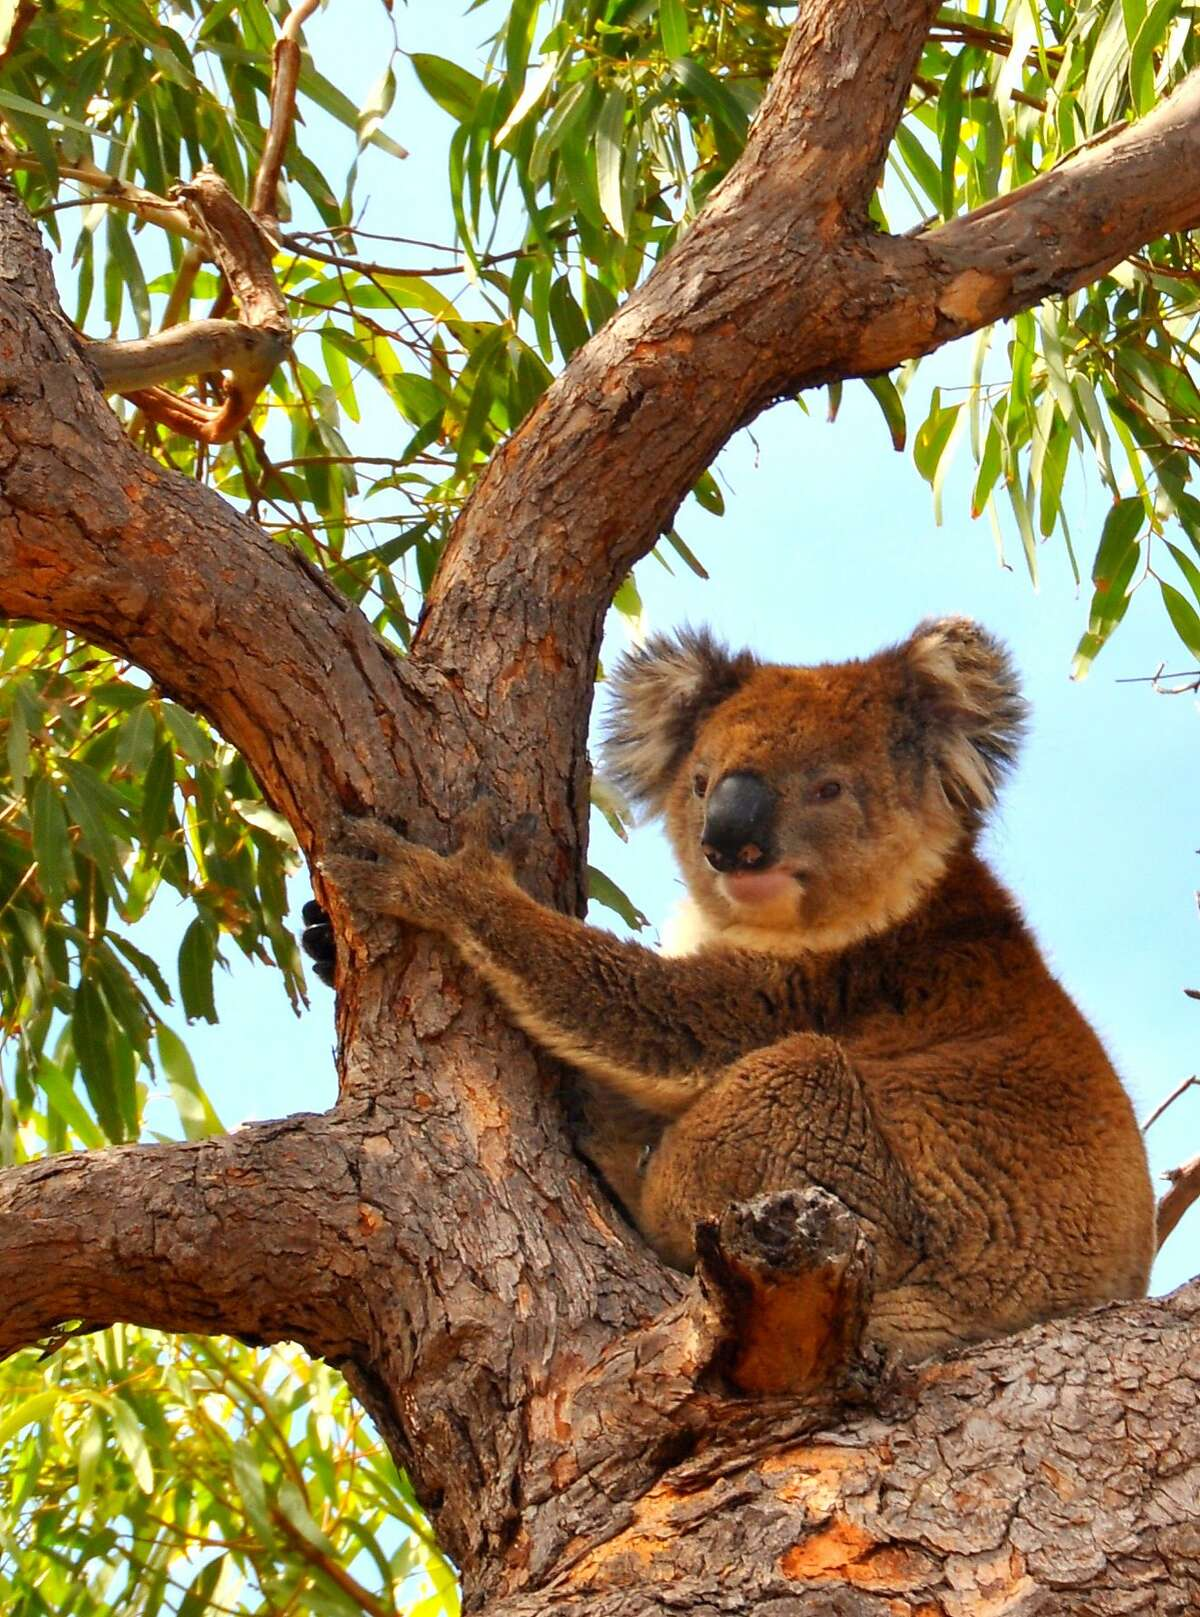 A koala happily lounging at the Mikkera Homestead, an animal reserve near Port Lincoln, on the Eyre Peninsula.